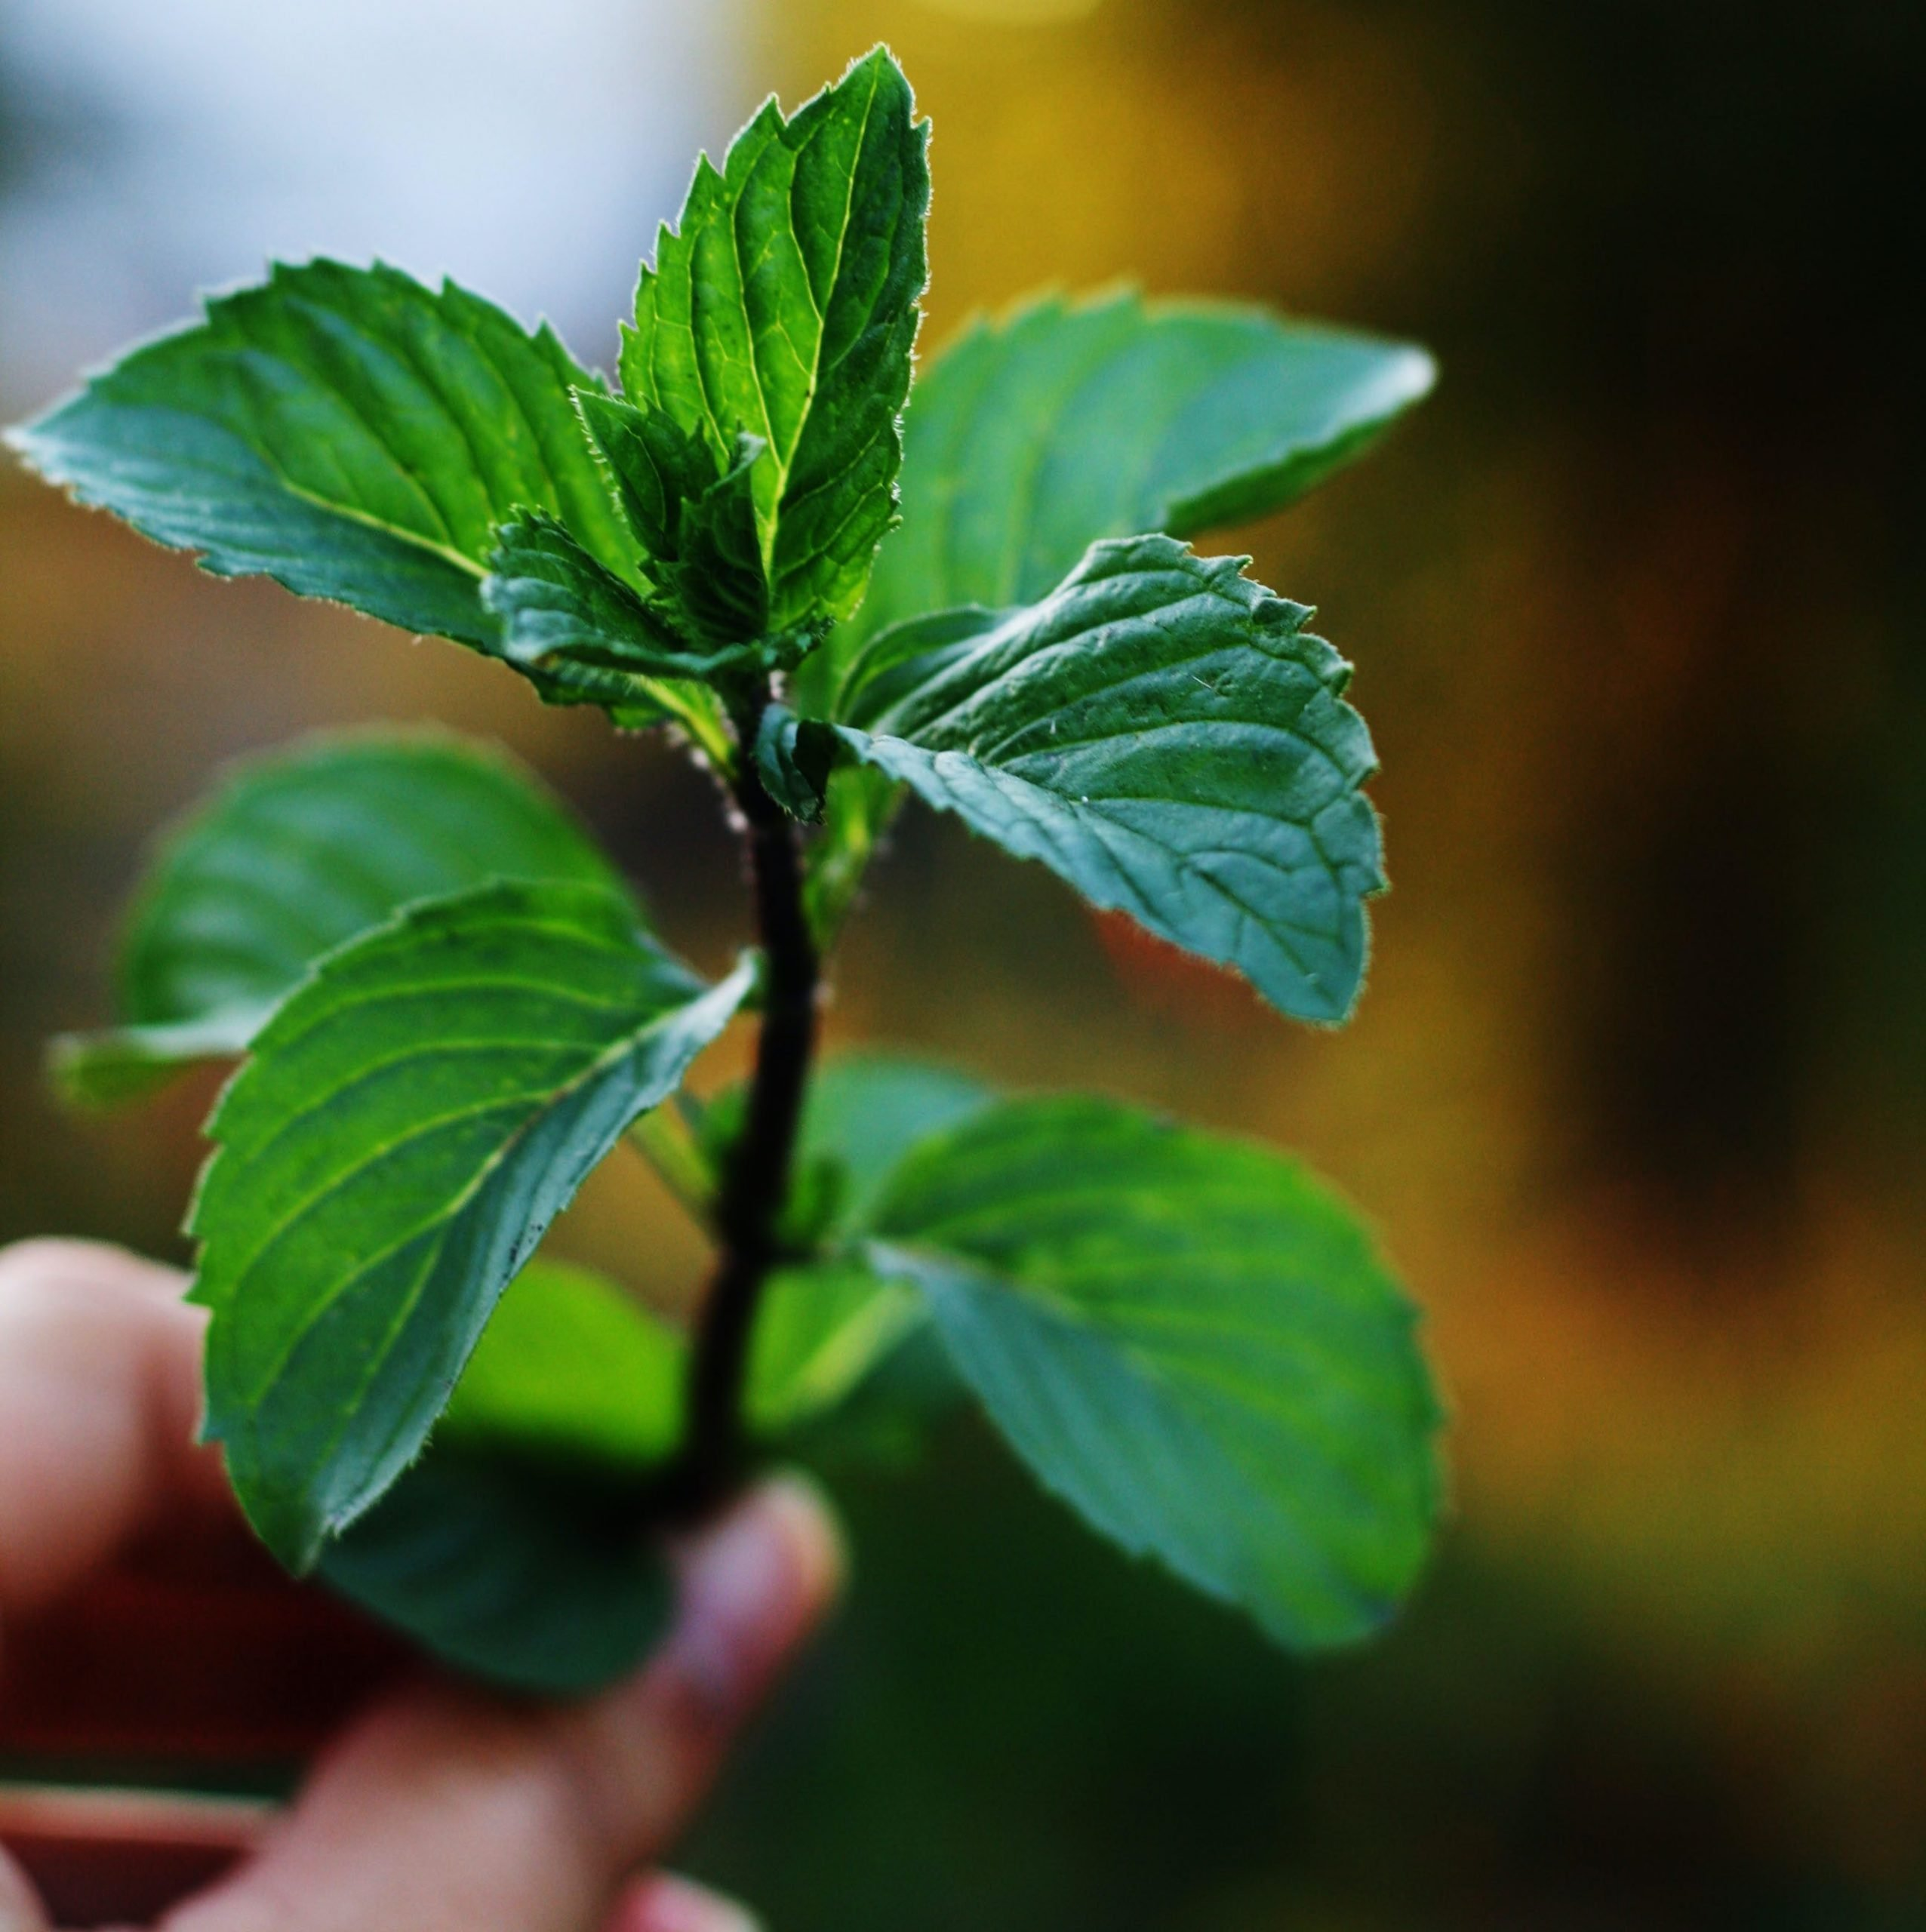 A twig of spearmint plant with spearmint leaves for demonstration.